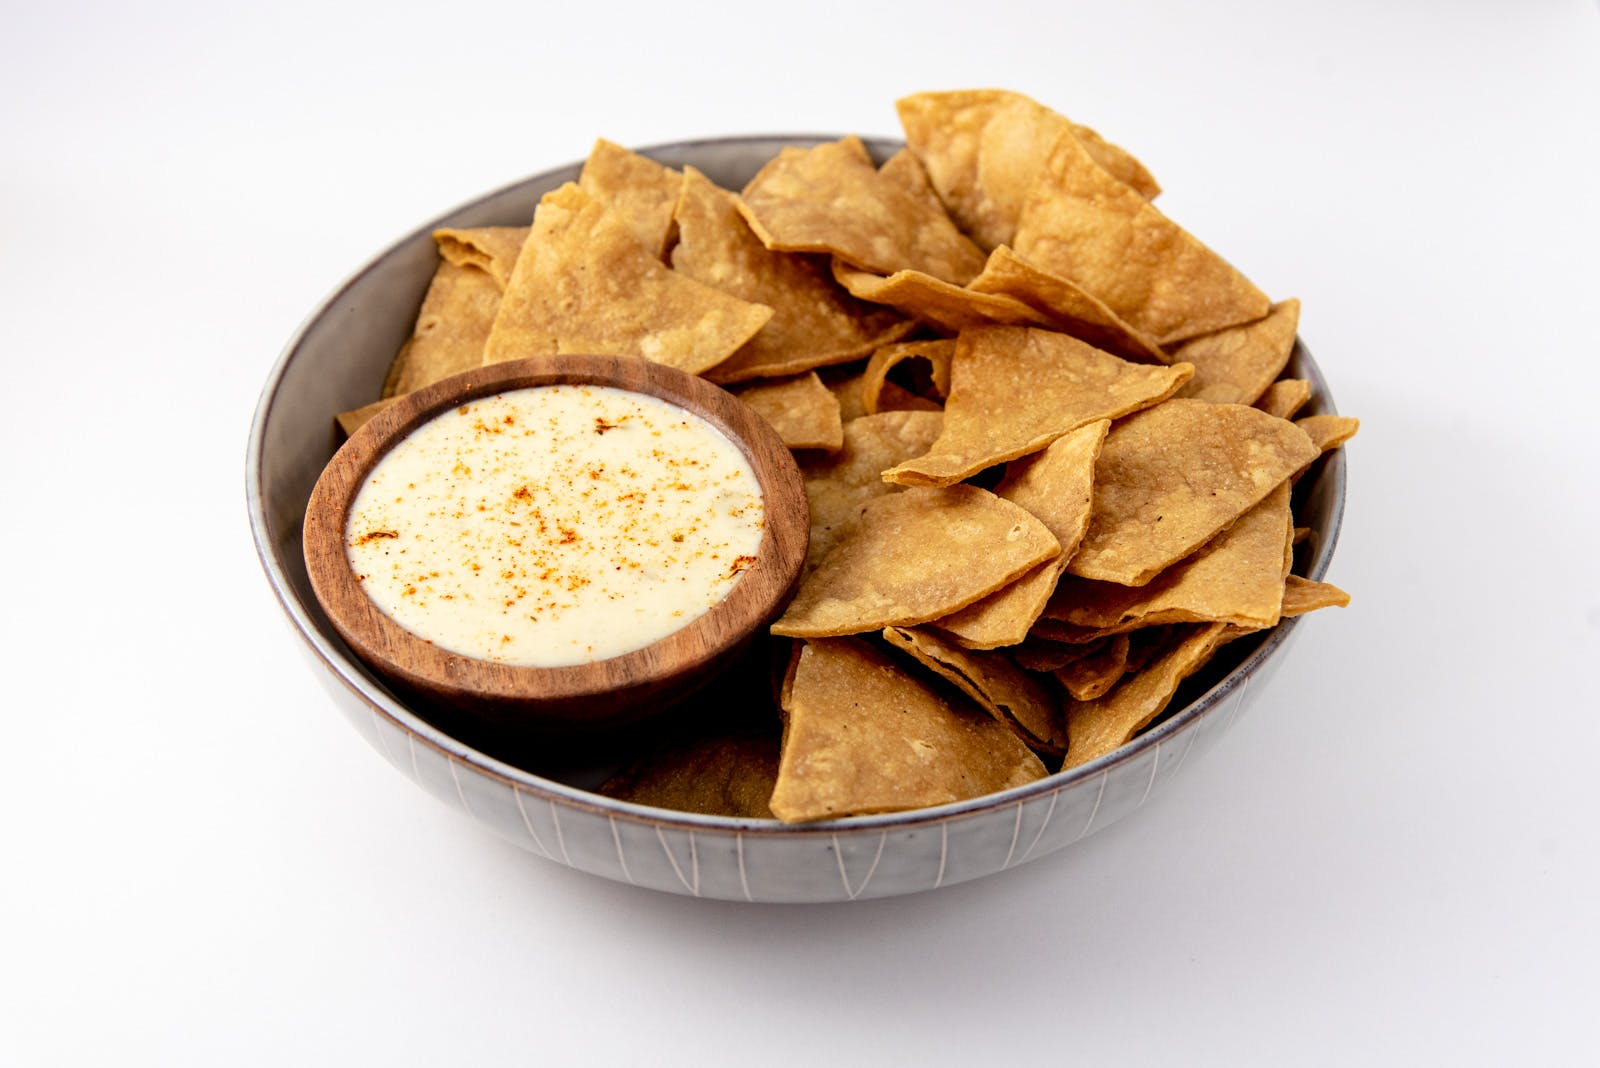 Yellow Corn Tortilla Chips and White Cheddar-Green Chili Queso from Taco Royale - Eastside Madison in Madison, WI